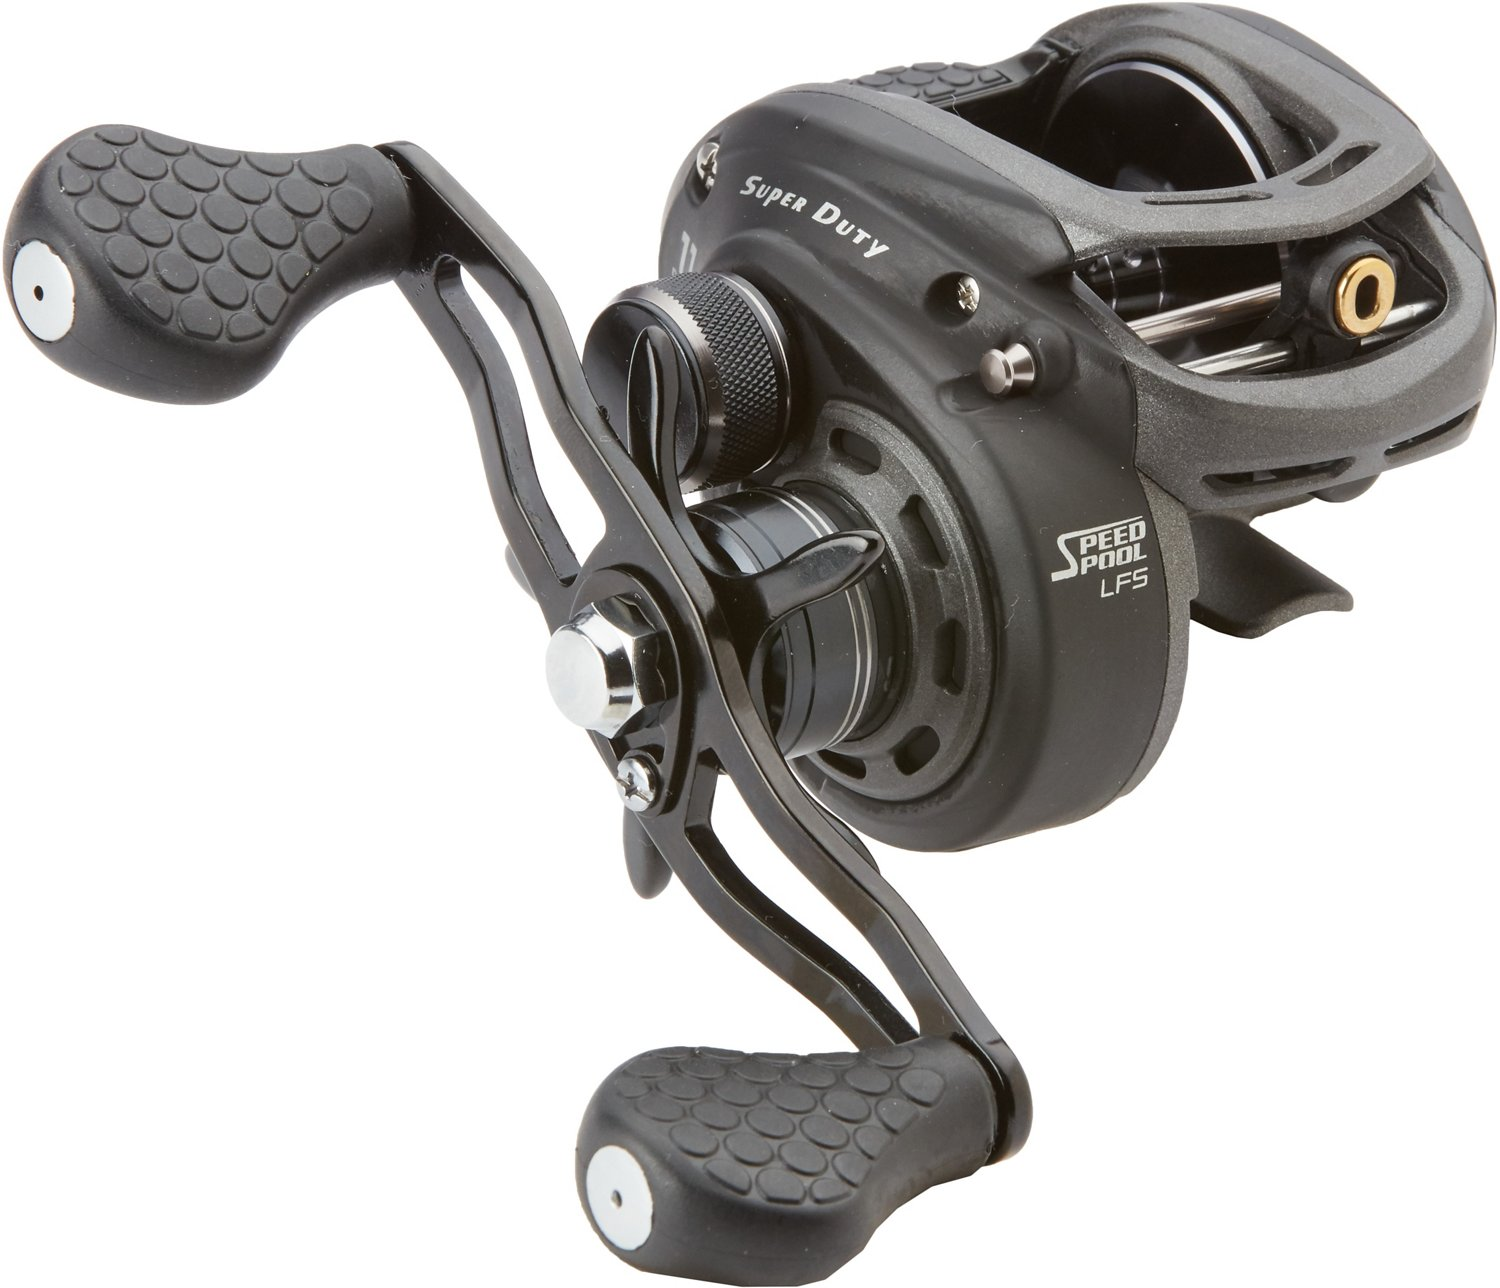 db508c2a043 Display product reviews for Lew's Super Duty Speed Spool LFS Baitcast Reel